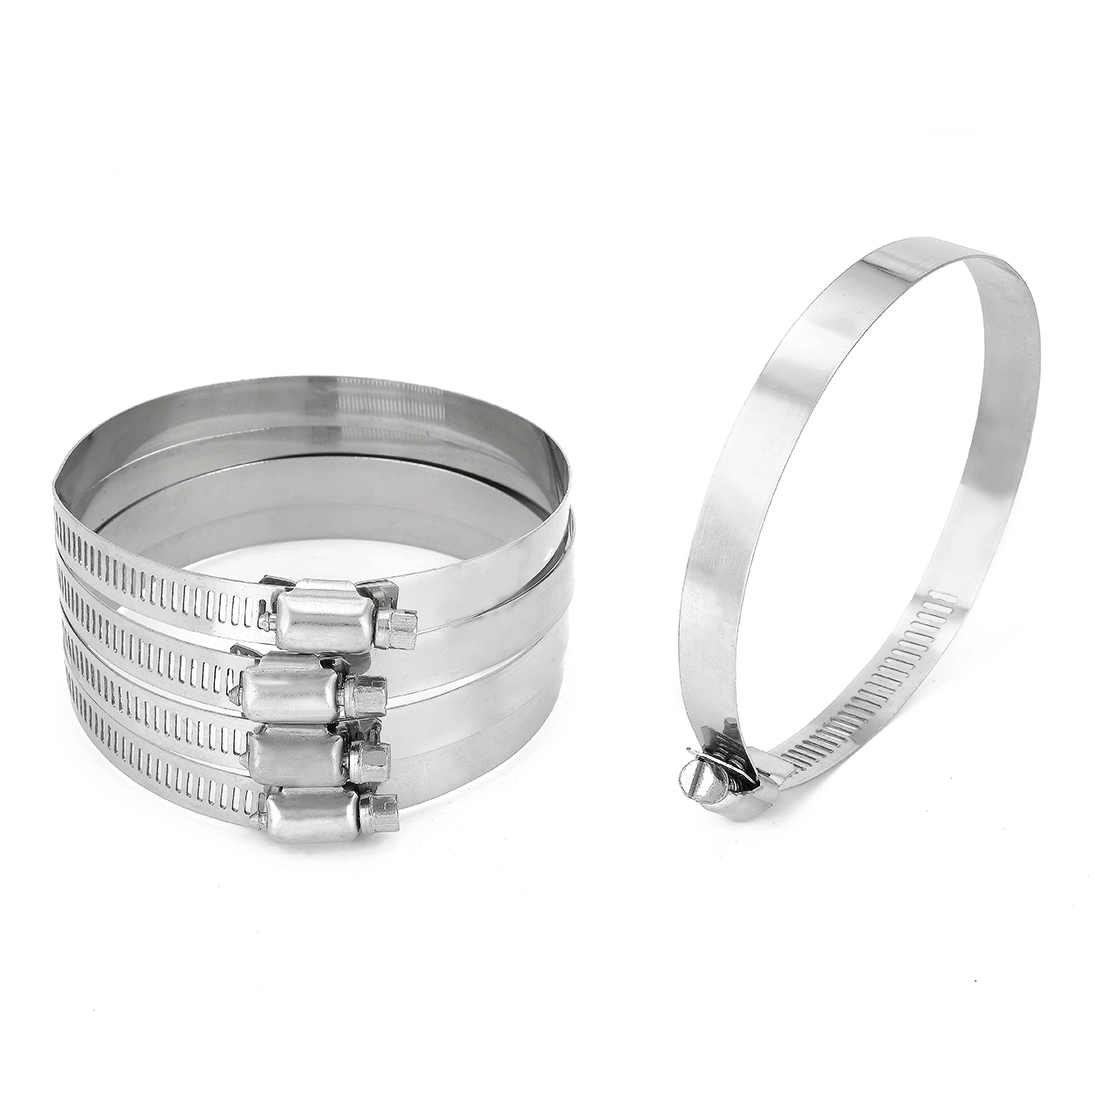 105mm to 127mm Clamping Range 304 Stainless Steel American Hose Clamp 5pcs - image 1 of 1